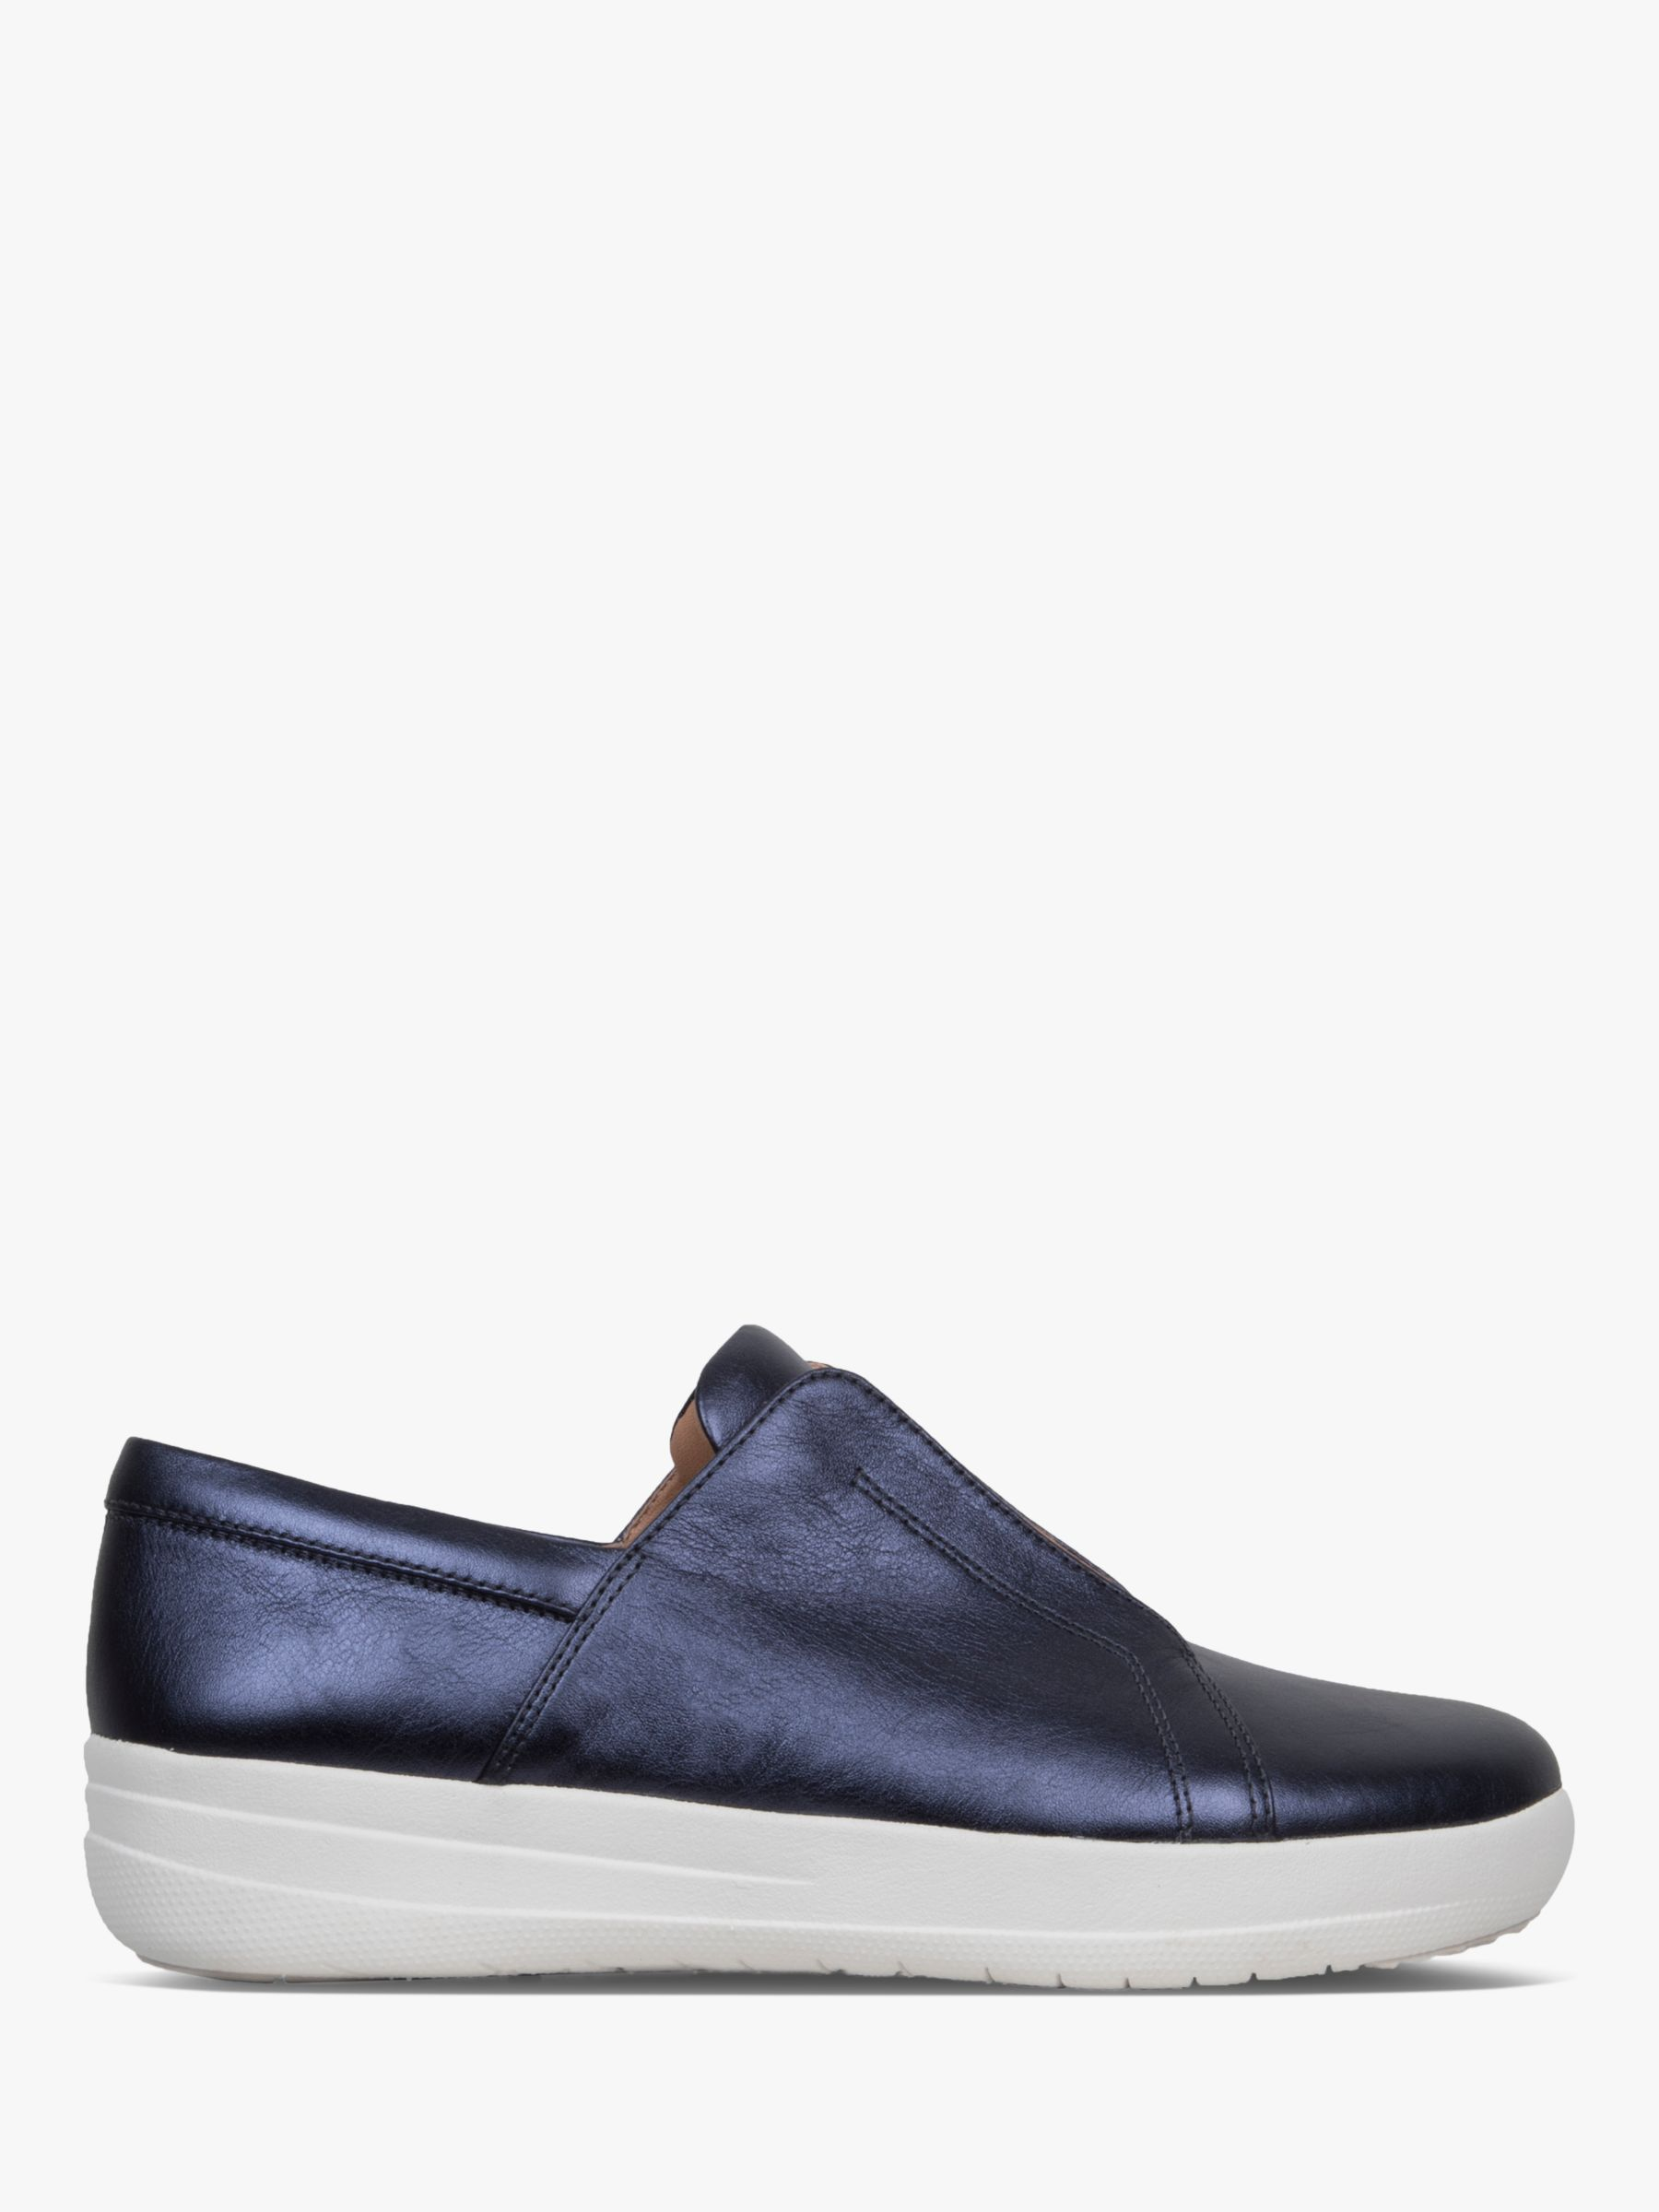 Fitflop FitFlop Racine Slip On Trainers